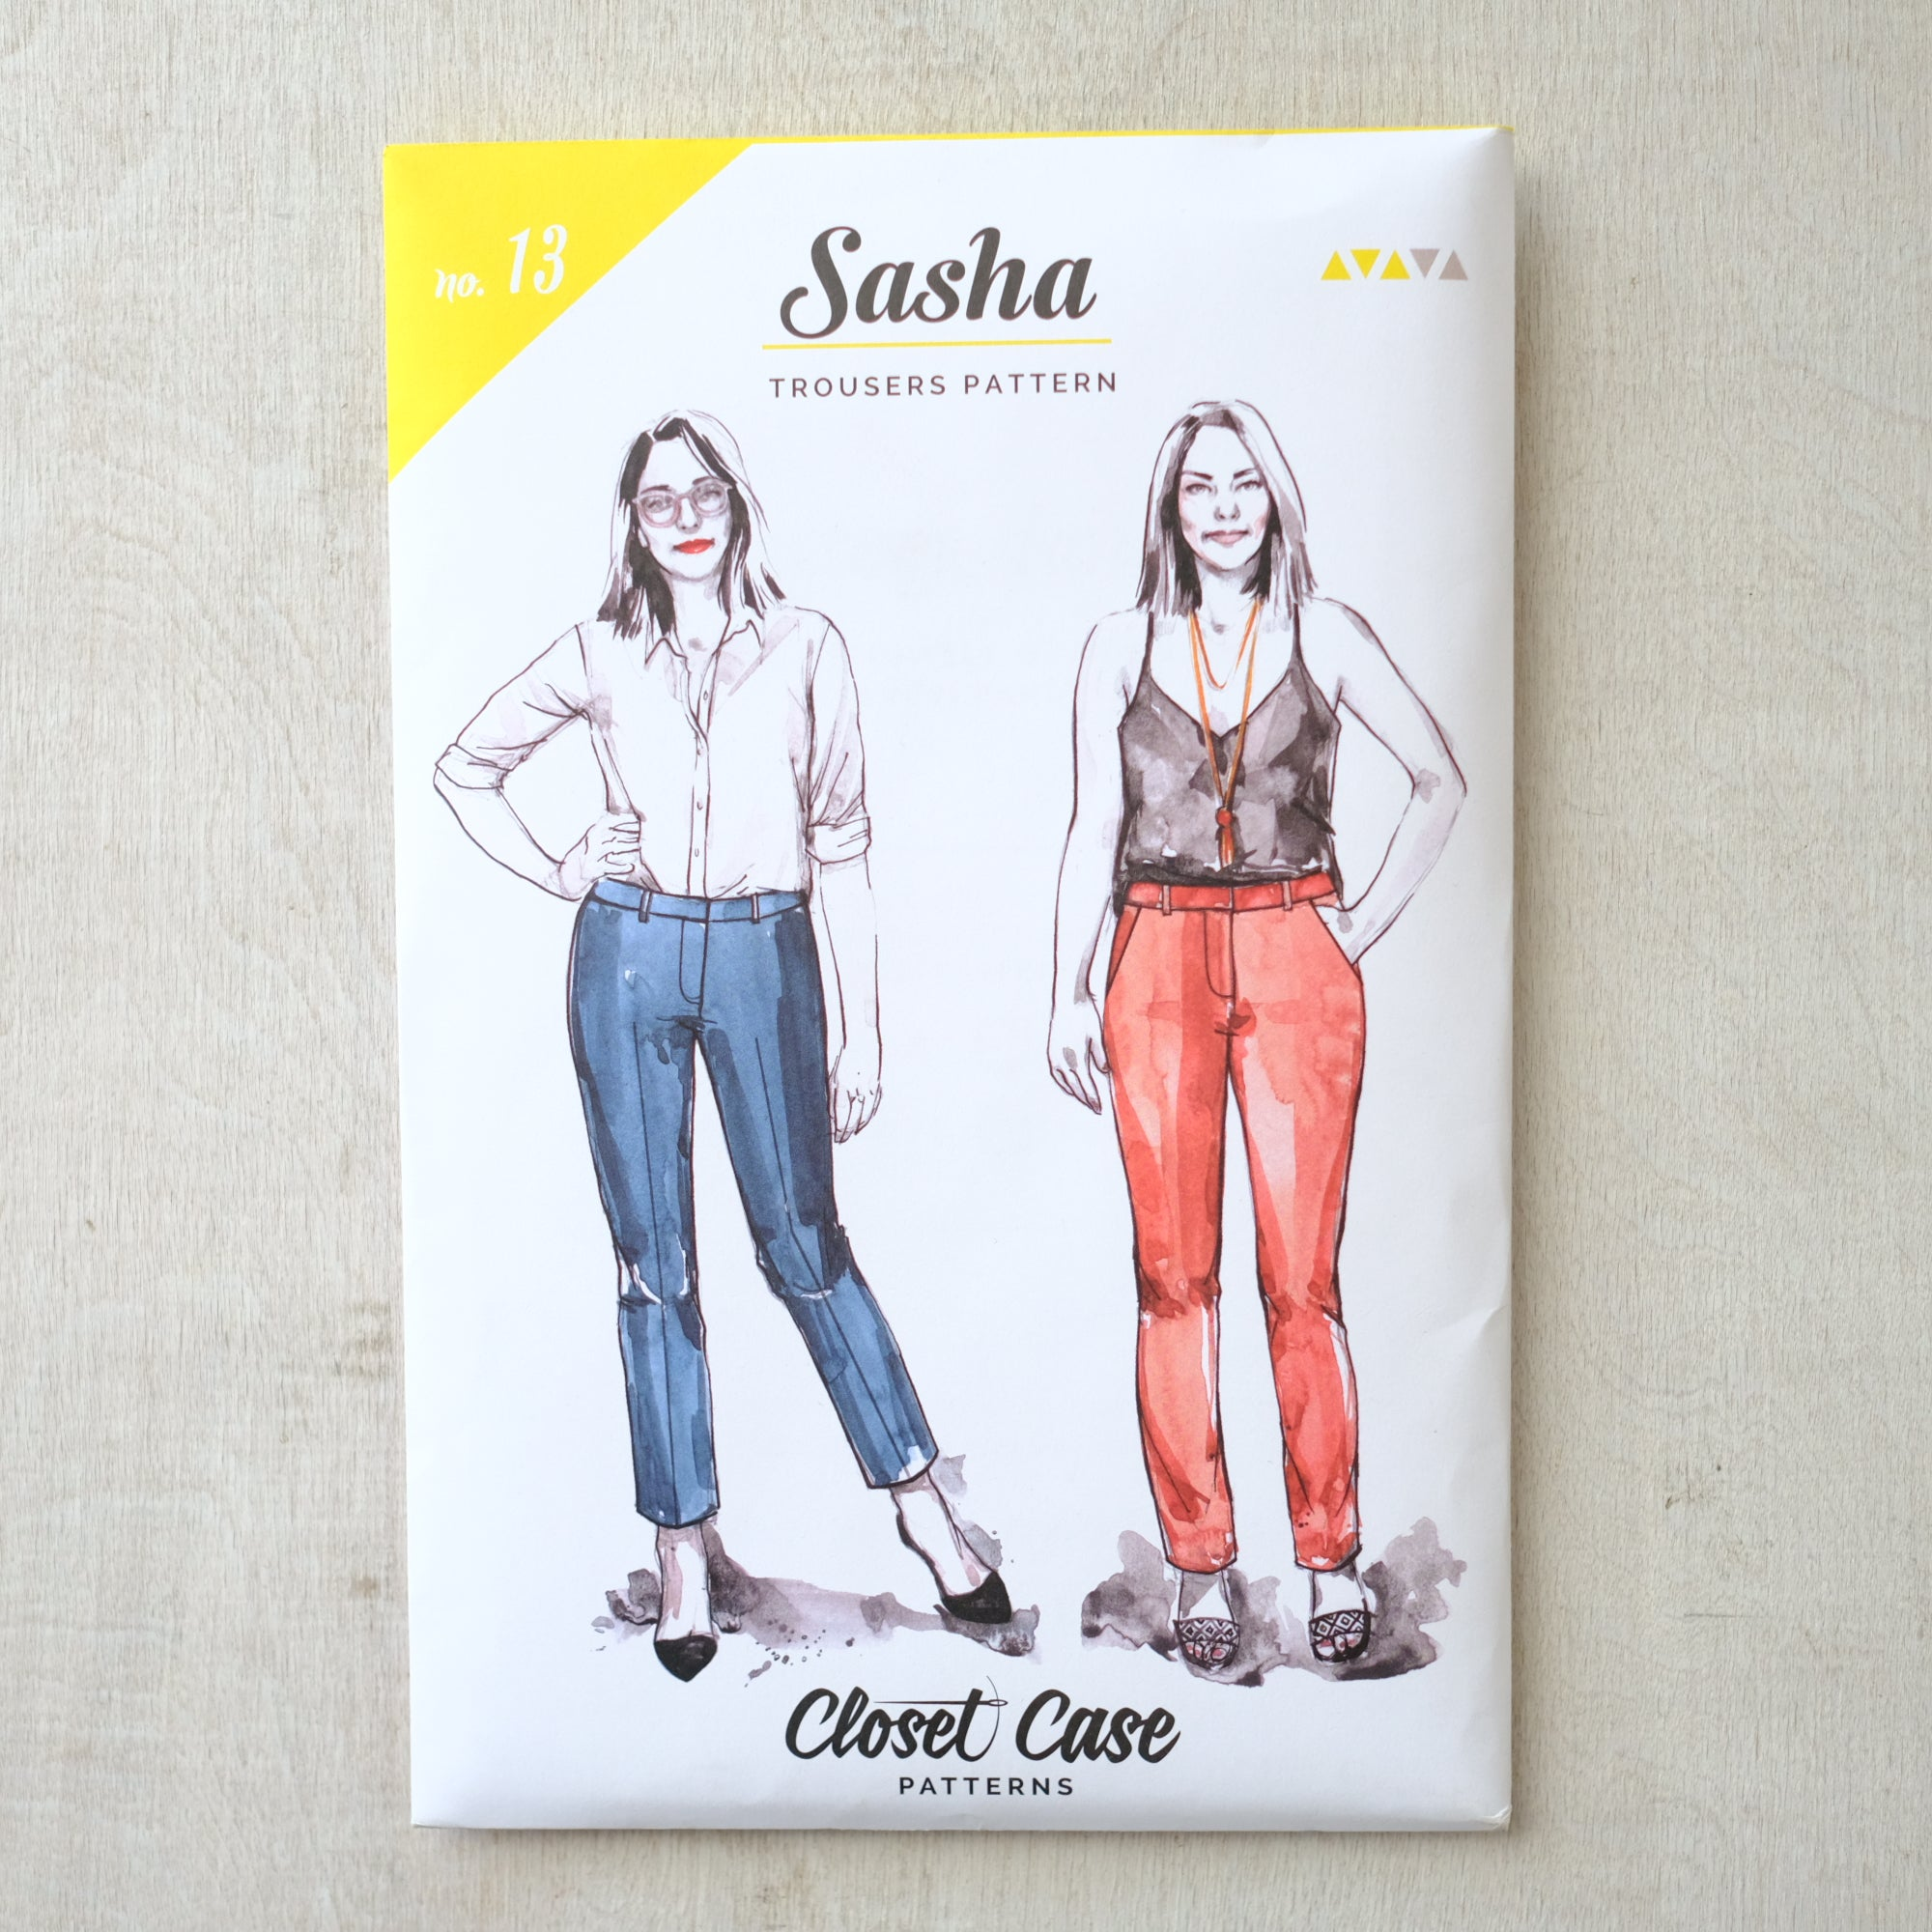 Closet Case Patterns - Sasha Trousers Pattern - PRINTED